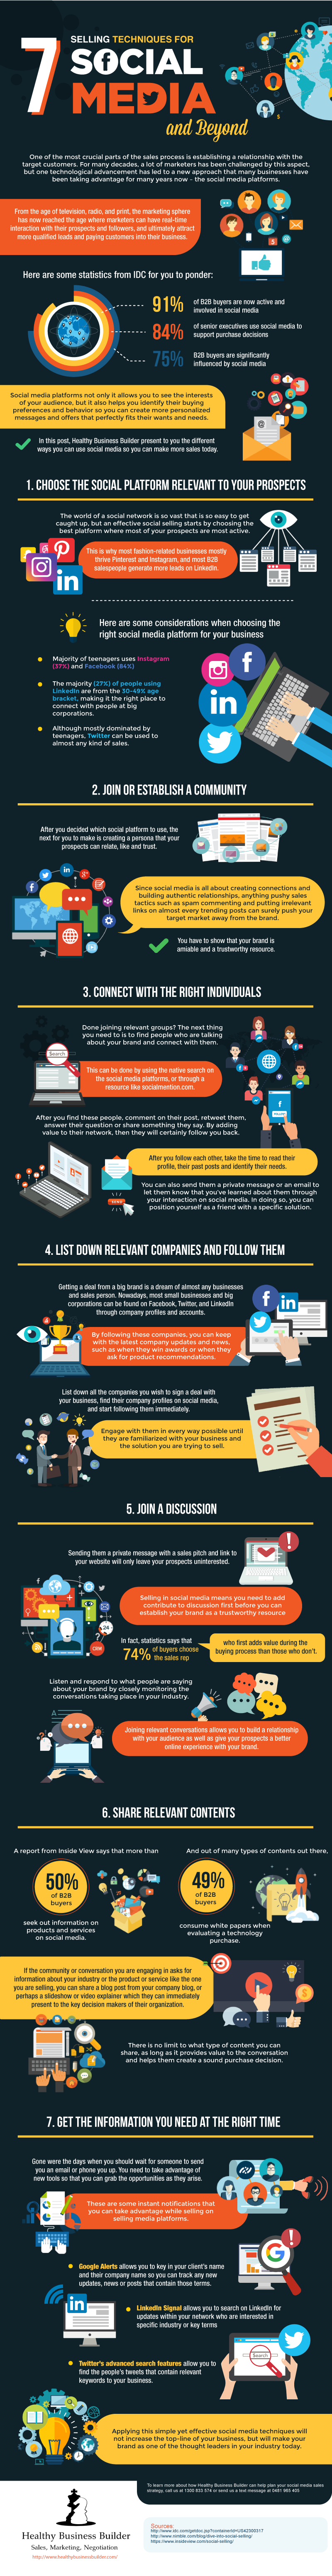 7 Selling Techniques for Social Media and Beyond (Infographic)